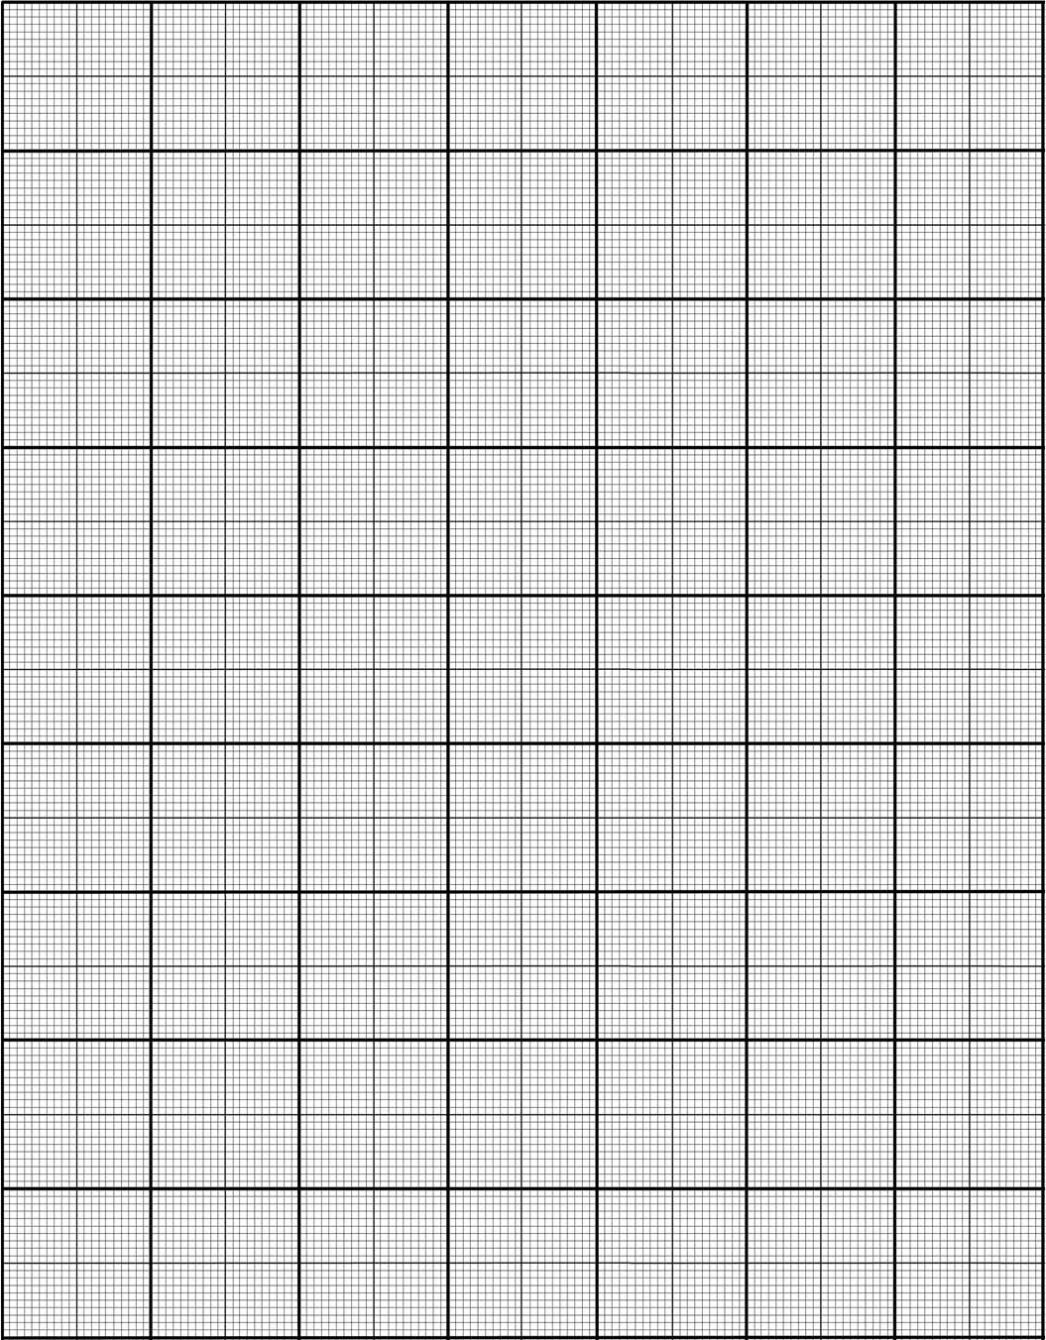 One Inch Graph Paper To Print - Kaza.psstech.co - Half Inch Grid Paper Free Printable